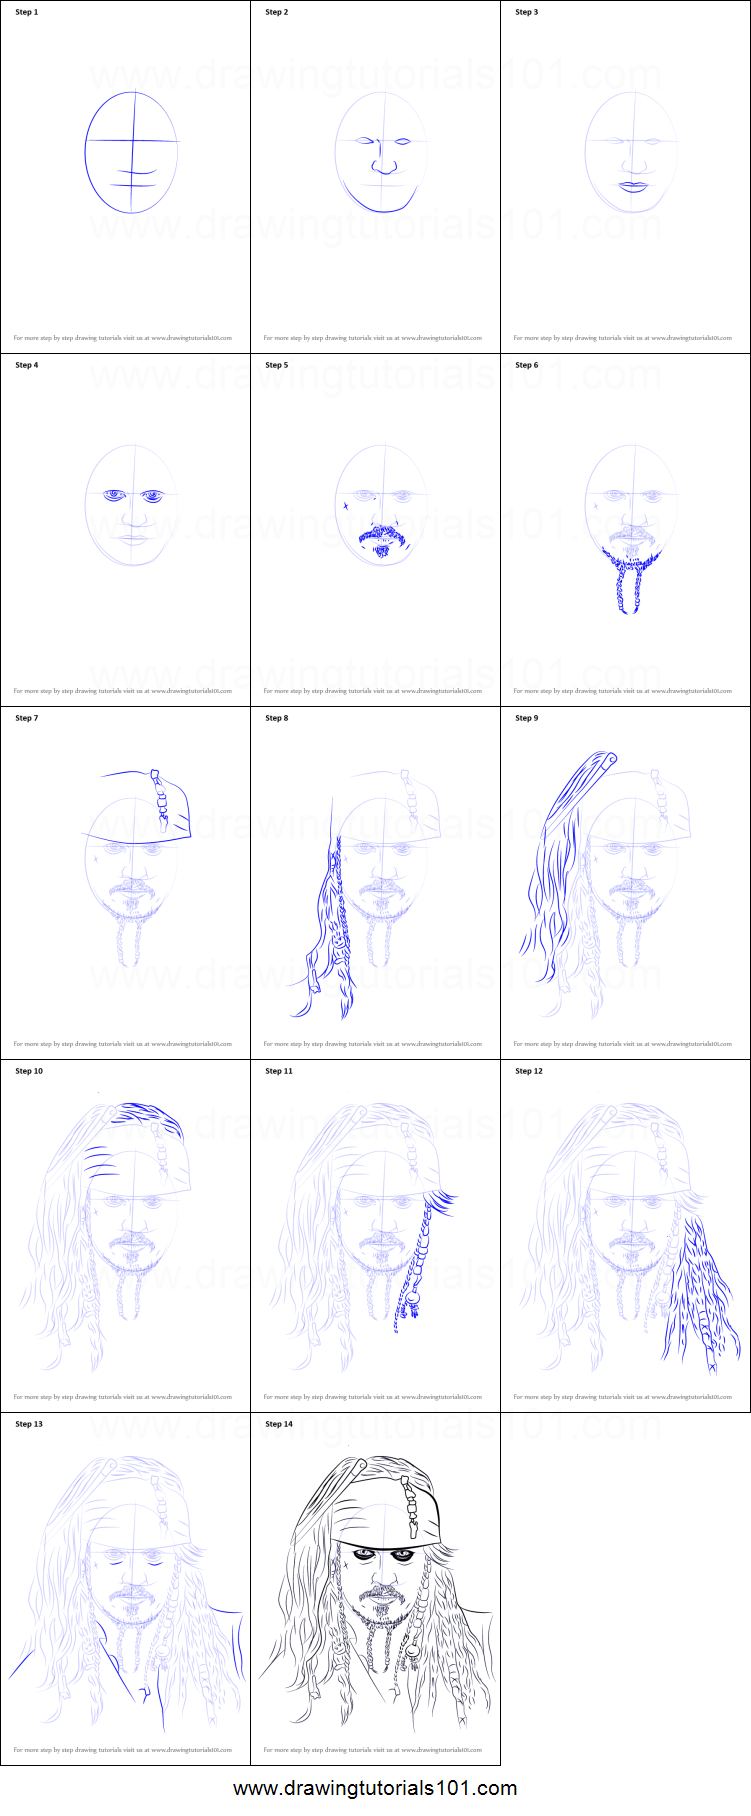 How To Draw Captain Jack Sparrow Printable Step By Step